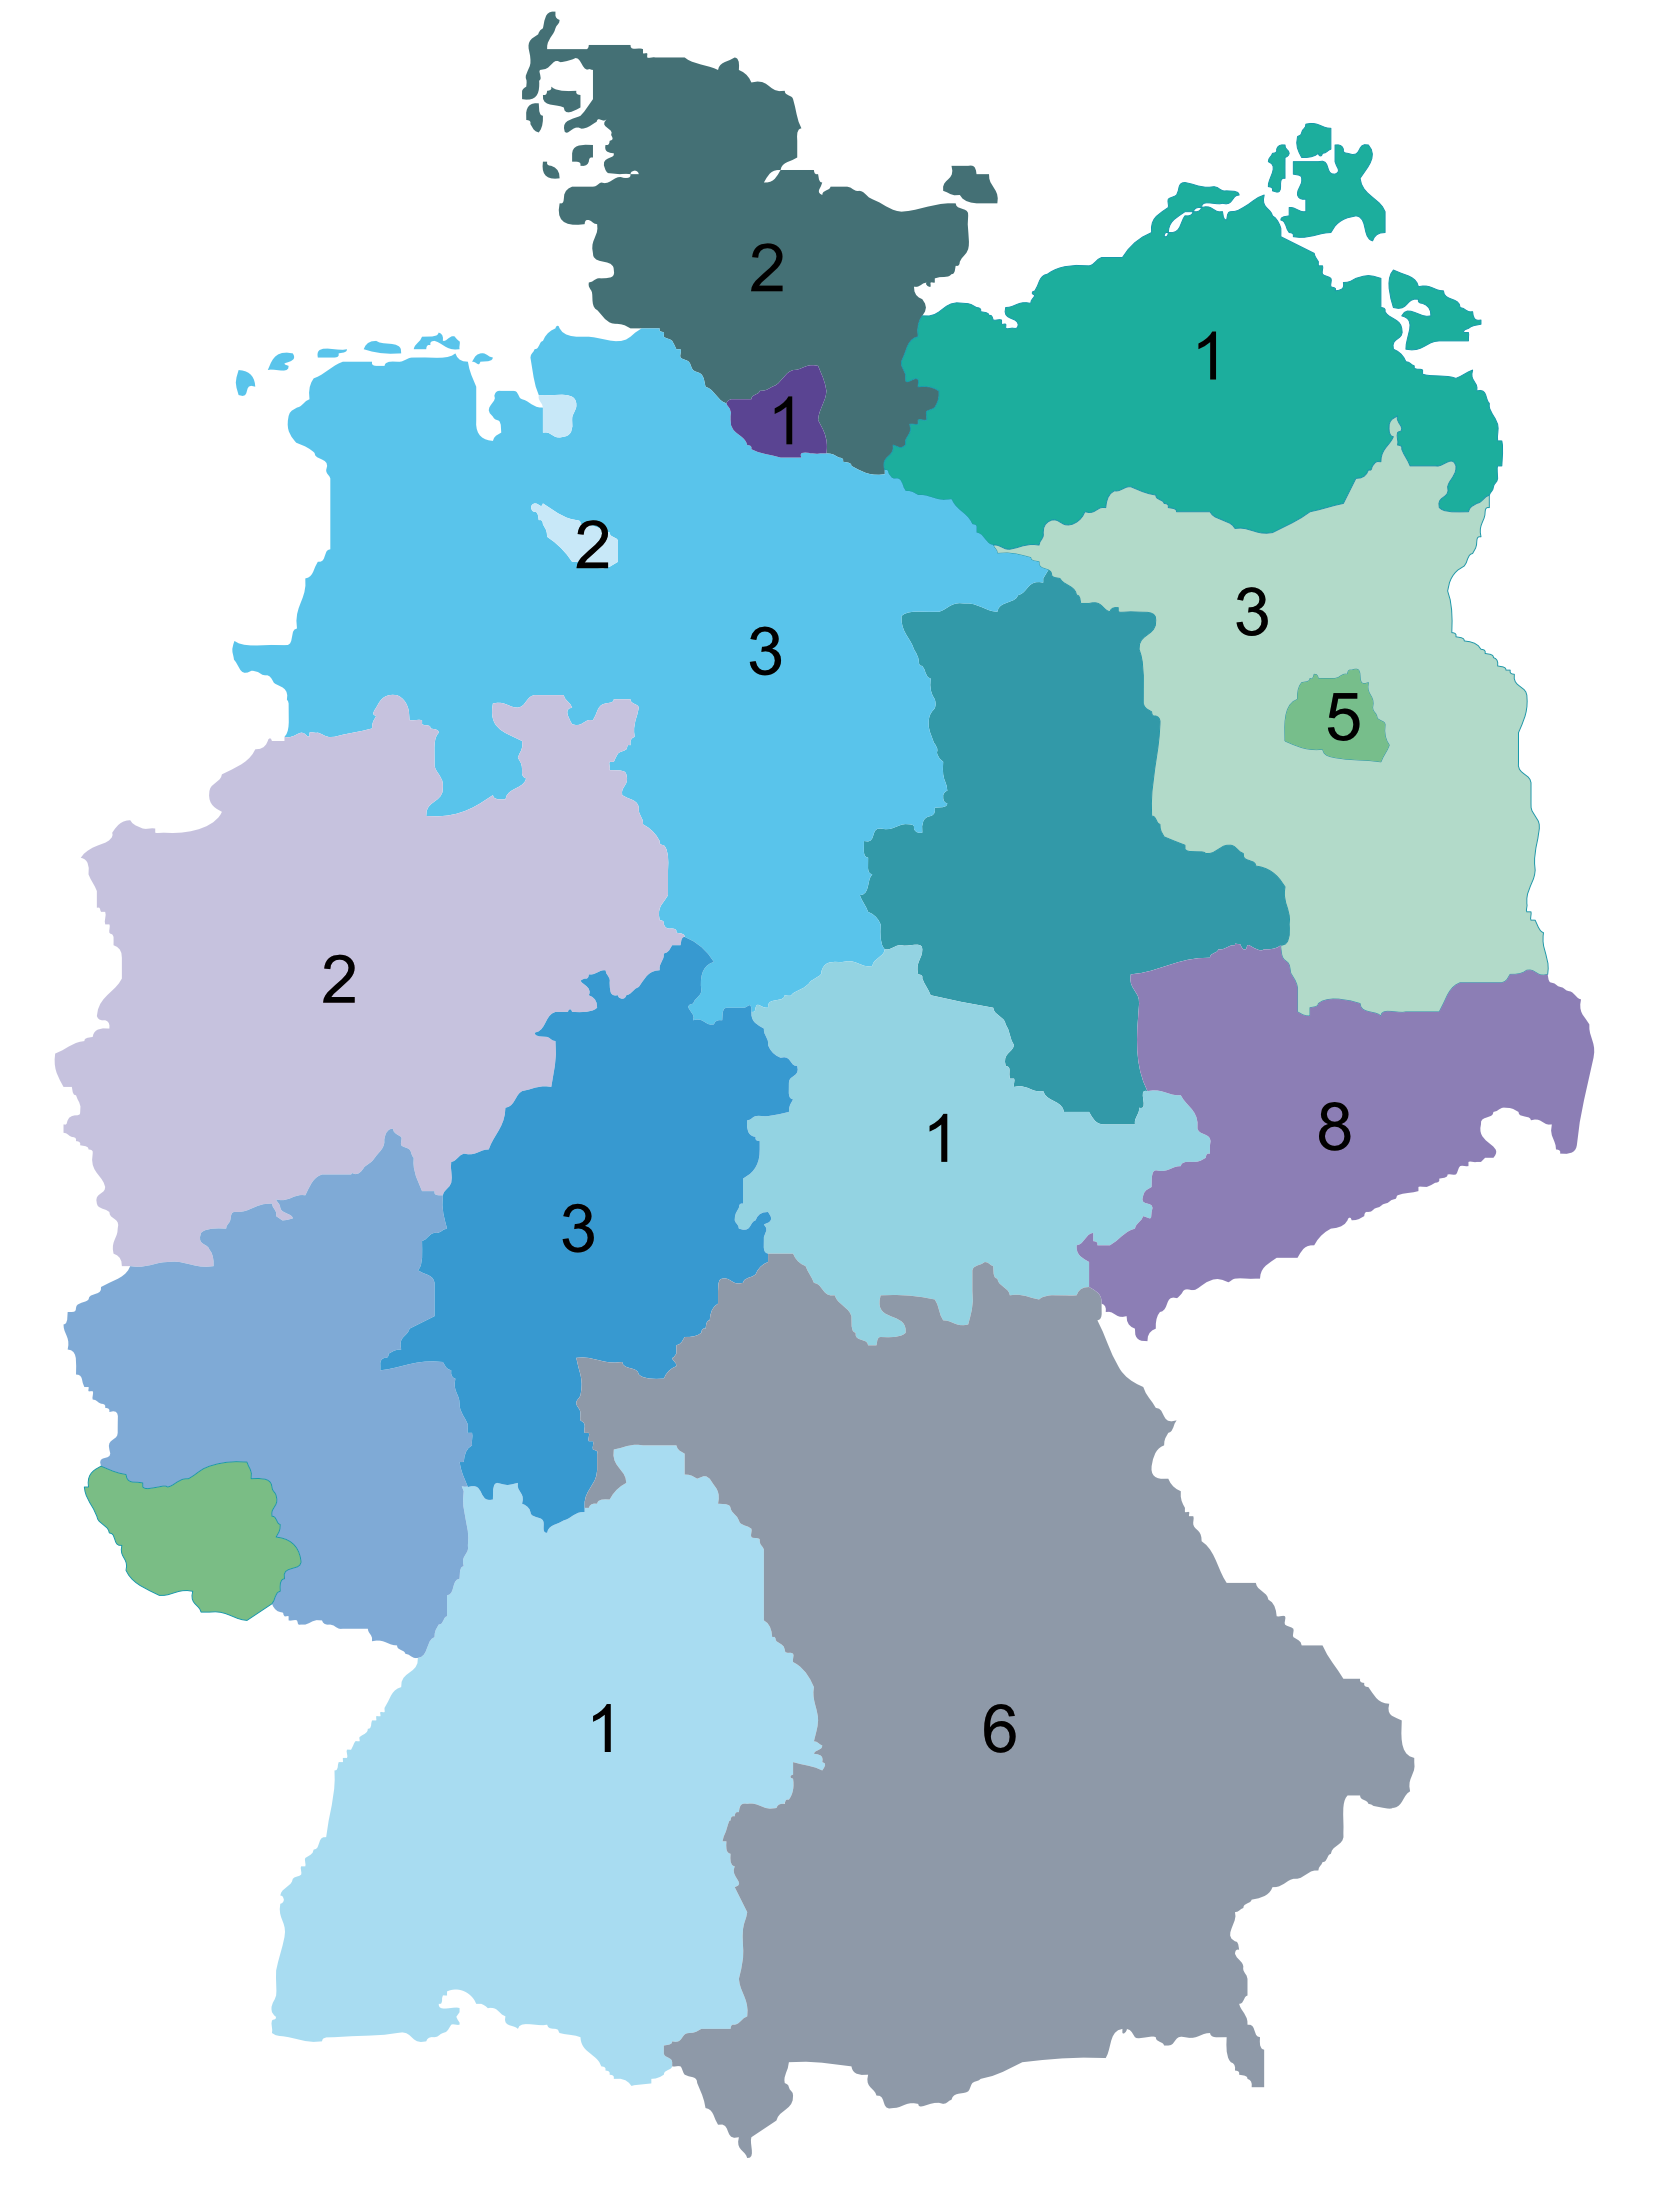 Pilots proposals for each state in Germany